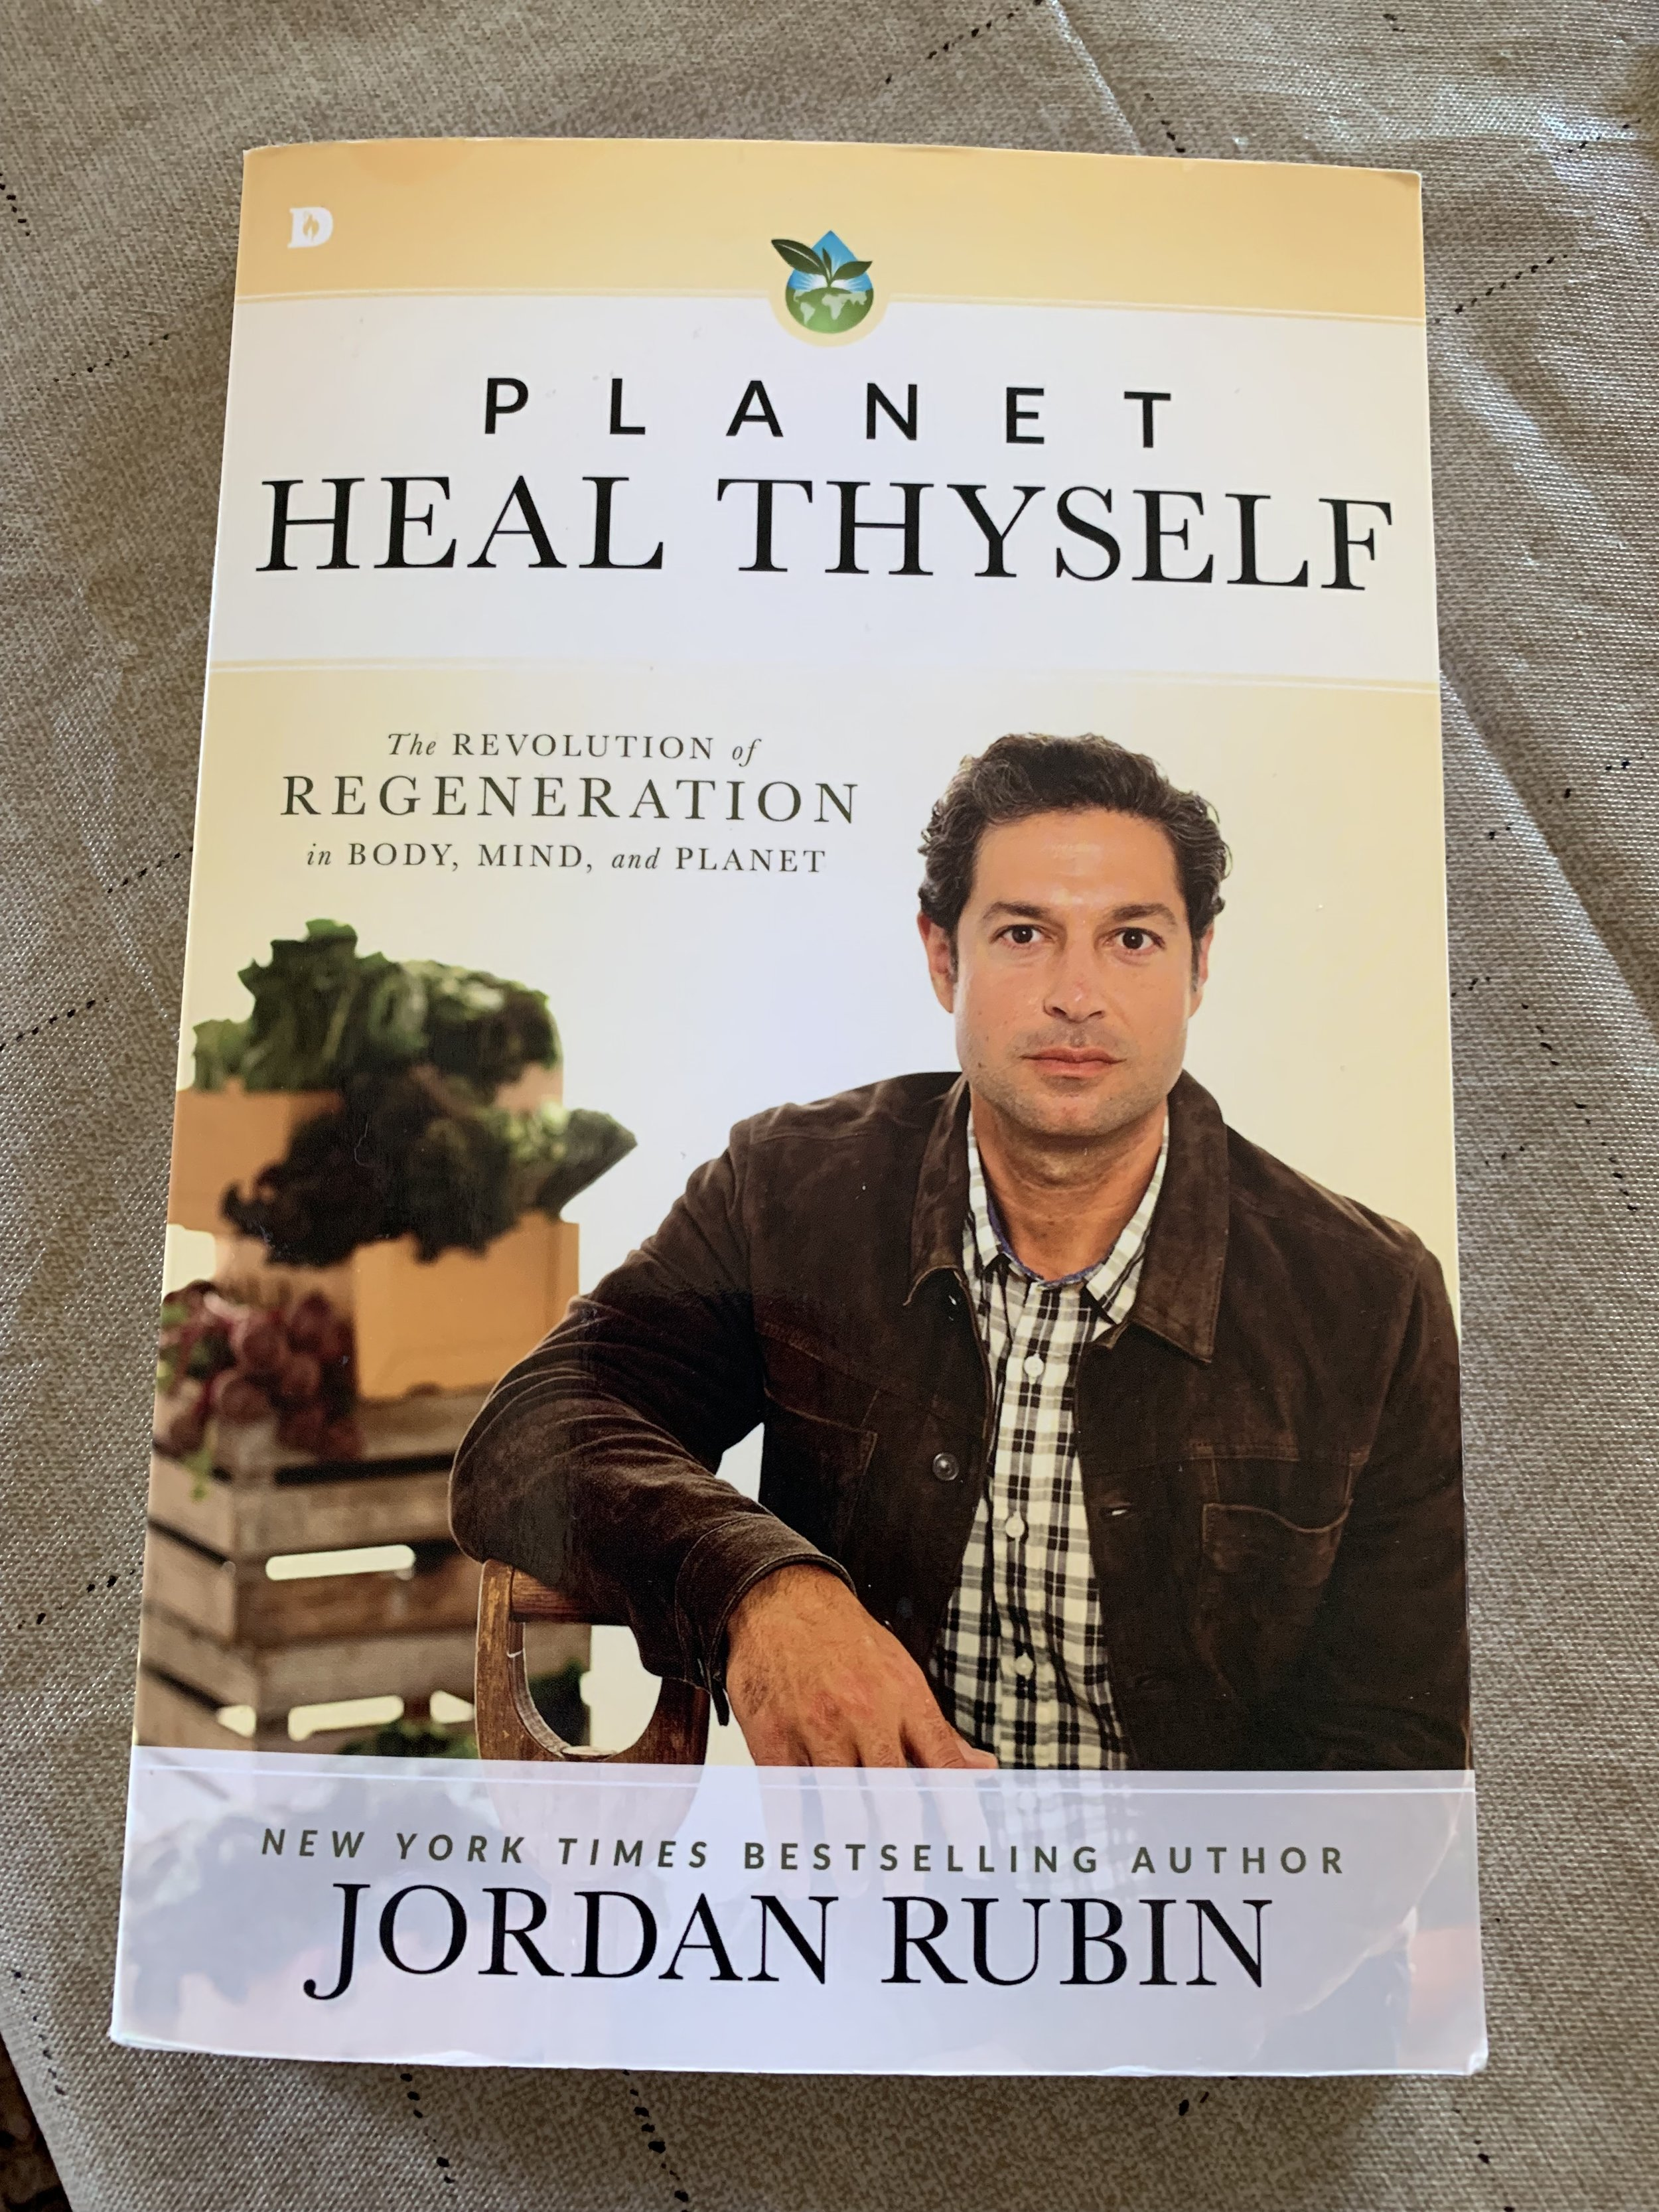 Twenty years ago, Jordan Rubin wrote a best seller that told how diet change saved his life. Now he has lots of suggestions for us to incorporate into our lives that will go a long way to saving the life of Mother Earth.